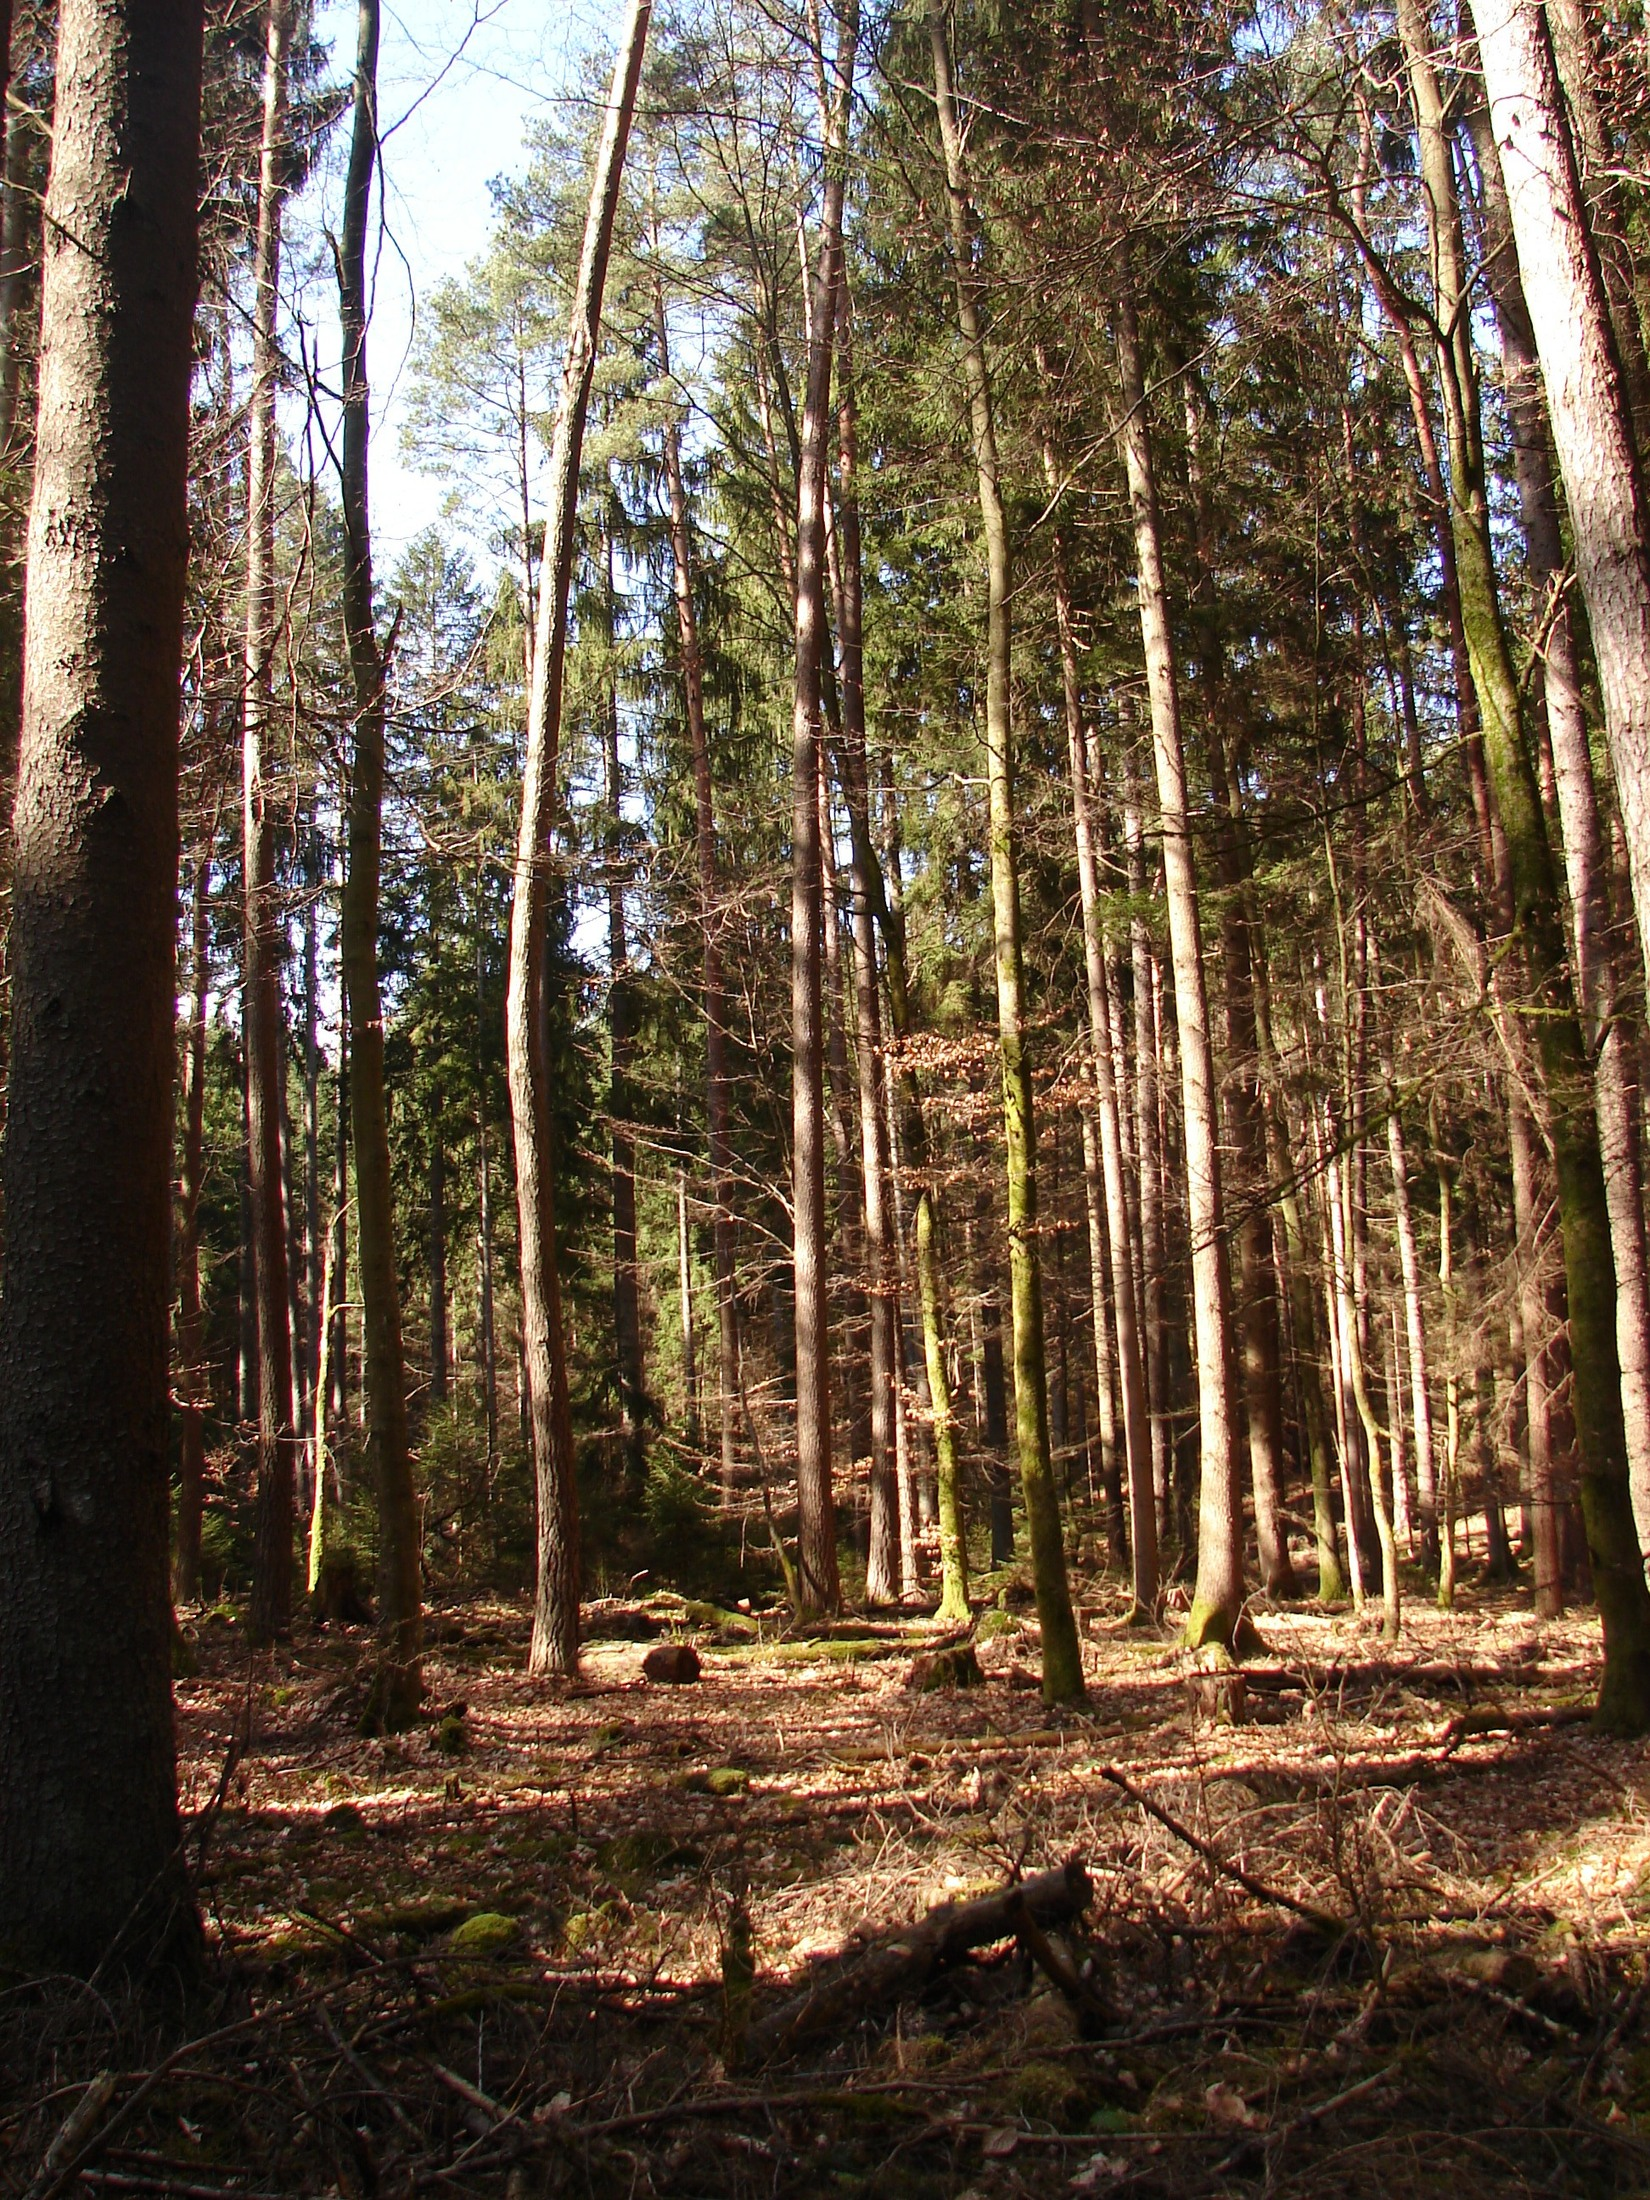 Spruce population in Moosbachtal